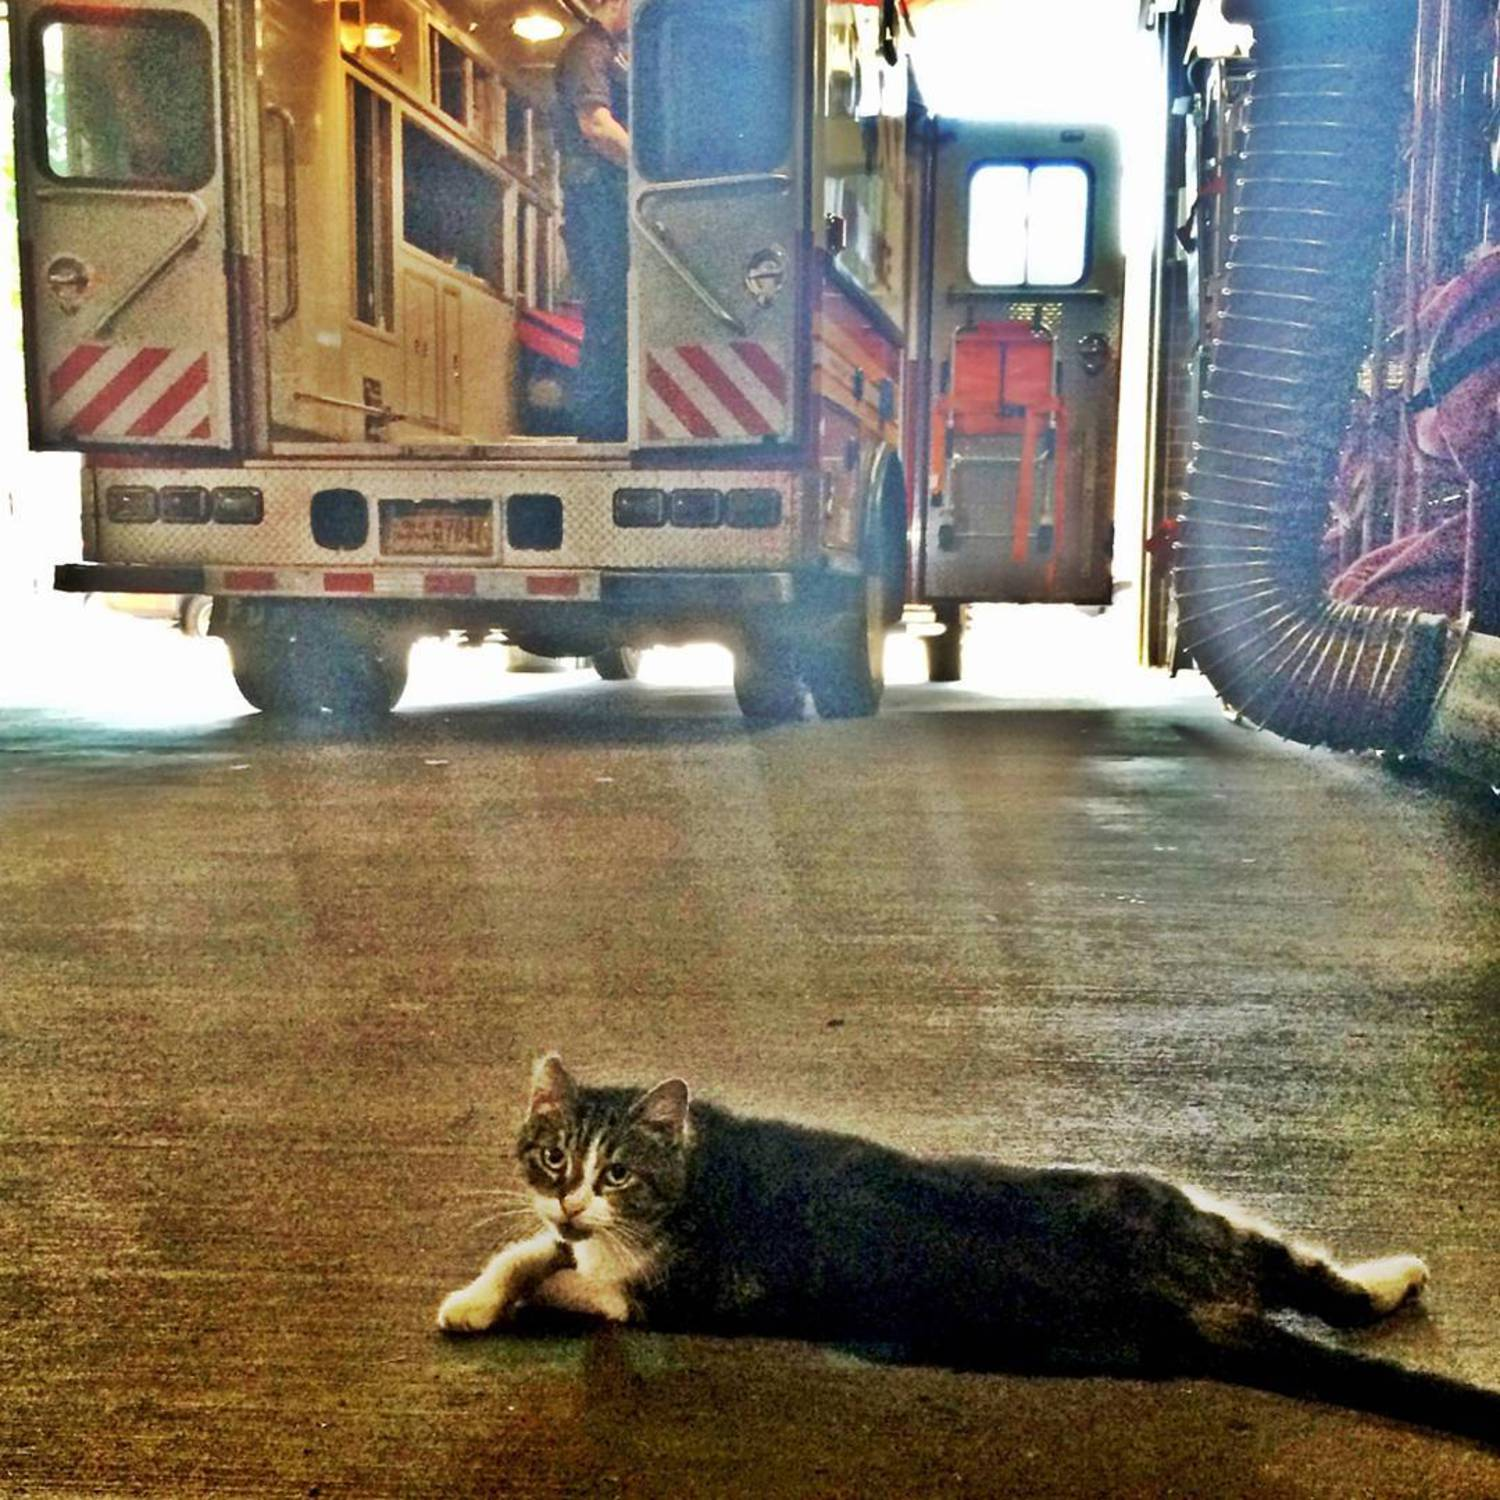 Thanks to @kellakazoo for making me a pop art celebrity as well. #art #catart #ambulance #rescuer #stationcat #nyc #savealife #catsinnewyorkcity #catsatworknyc #brooklyncats #artshots #kitty